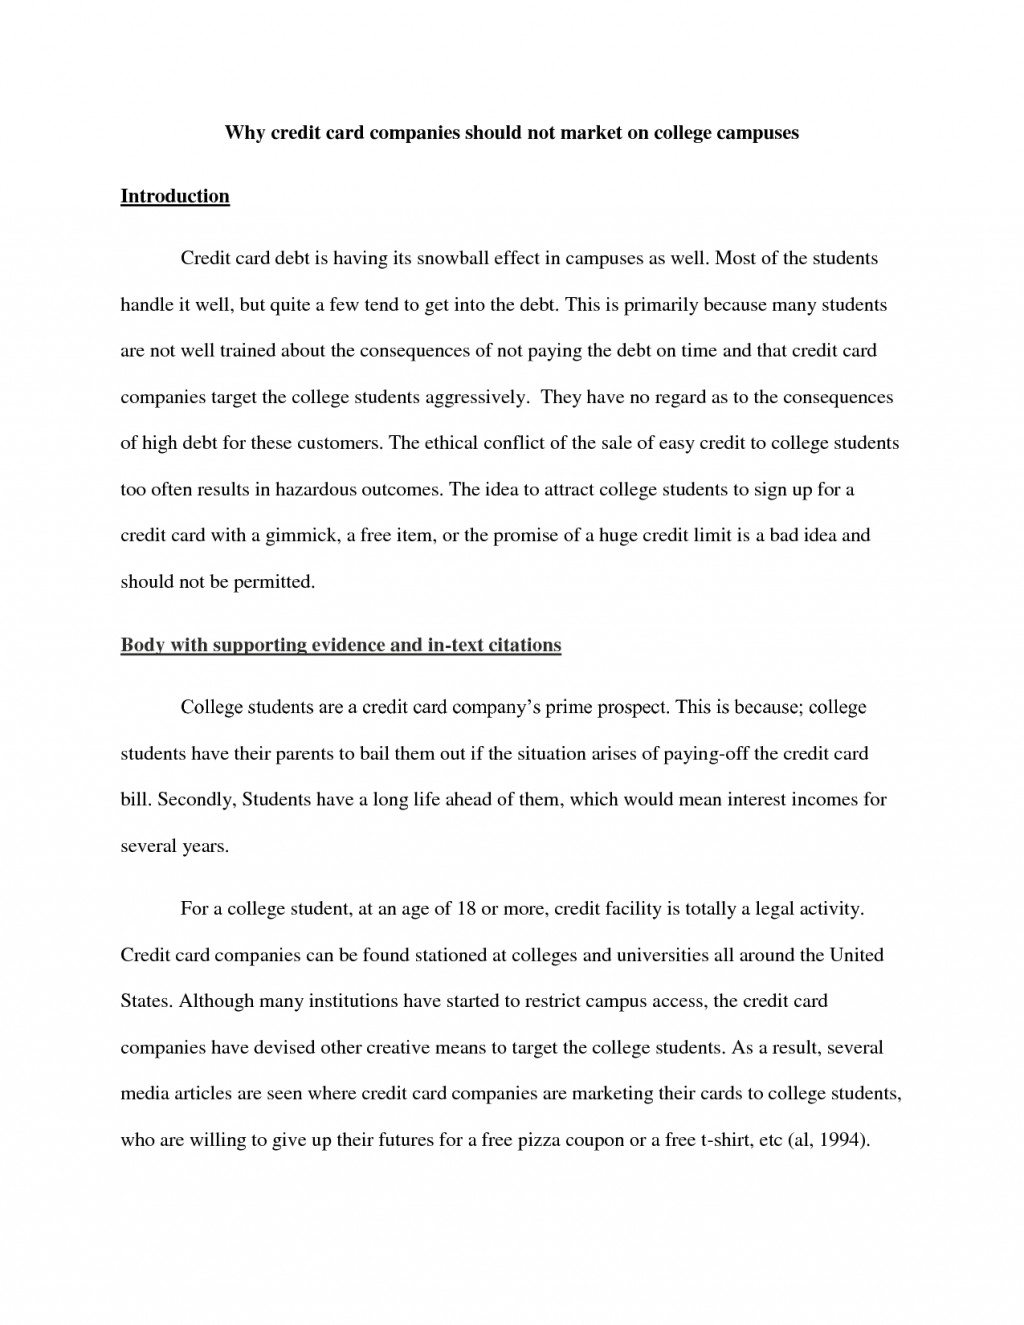 014 Ze9kom0g4rs Of Persuasive Essays Essay Excellent Examples 5th Grade Written By Graders Example Argumentative-persuasive Topics Large